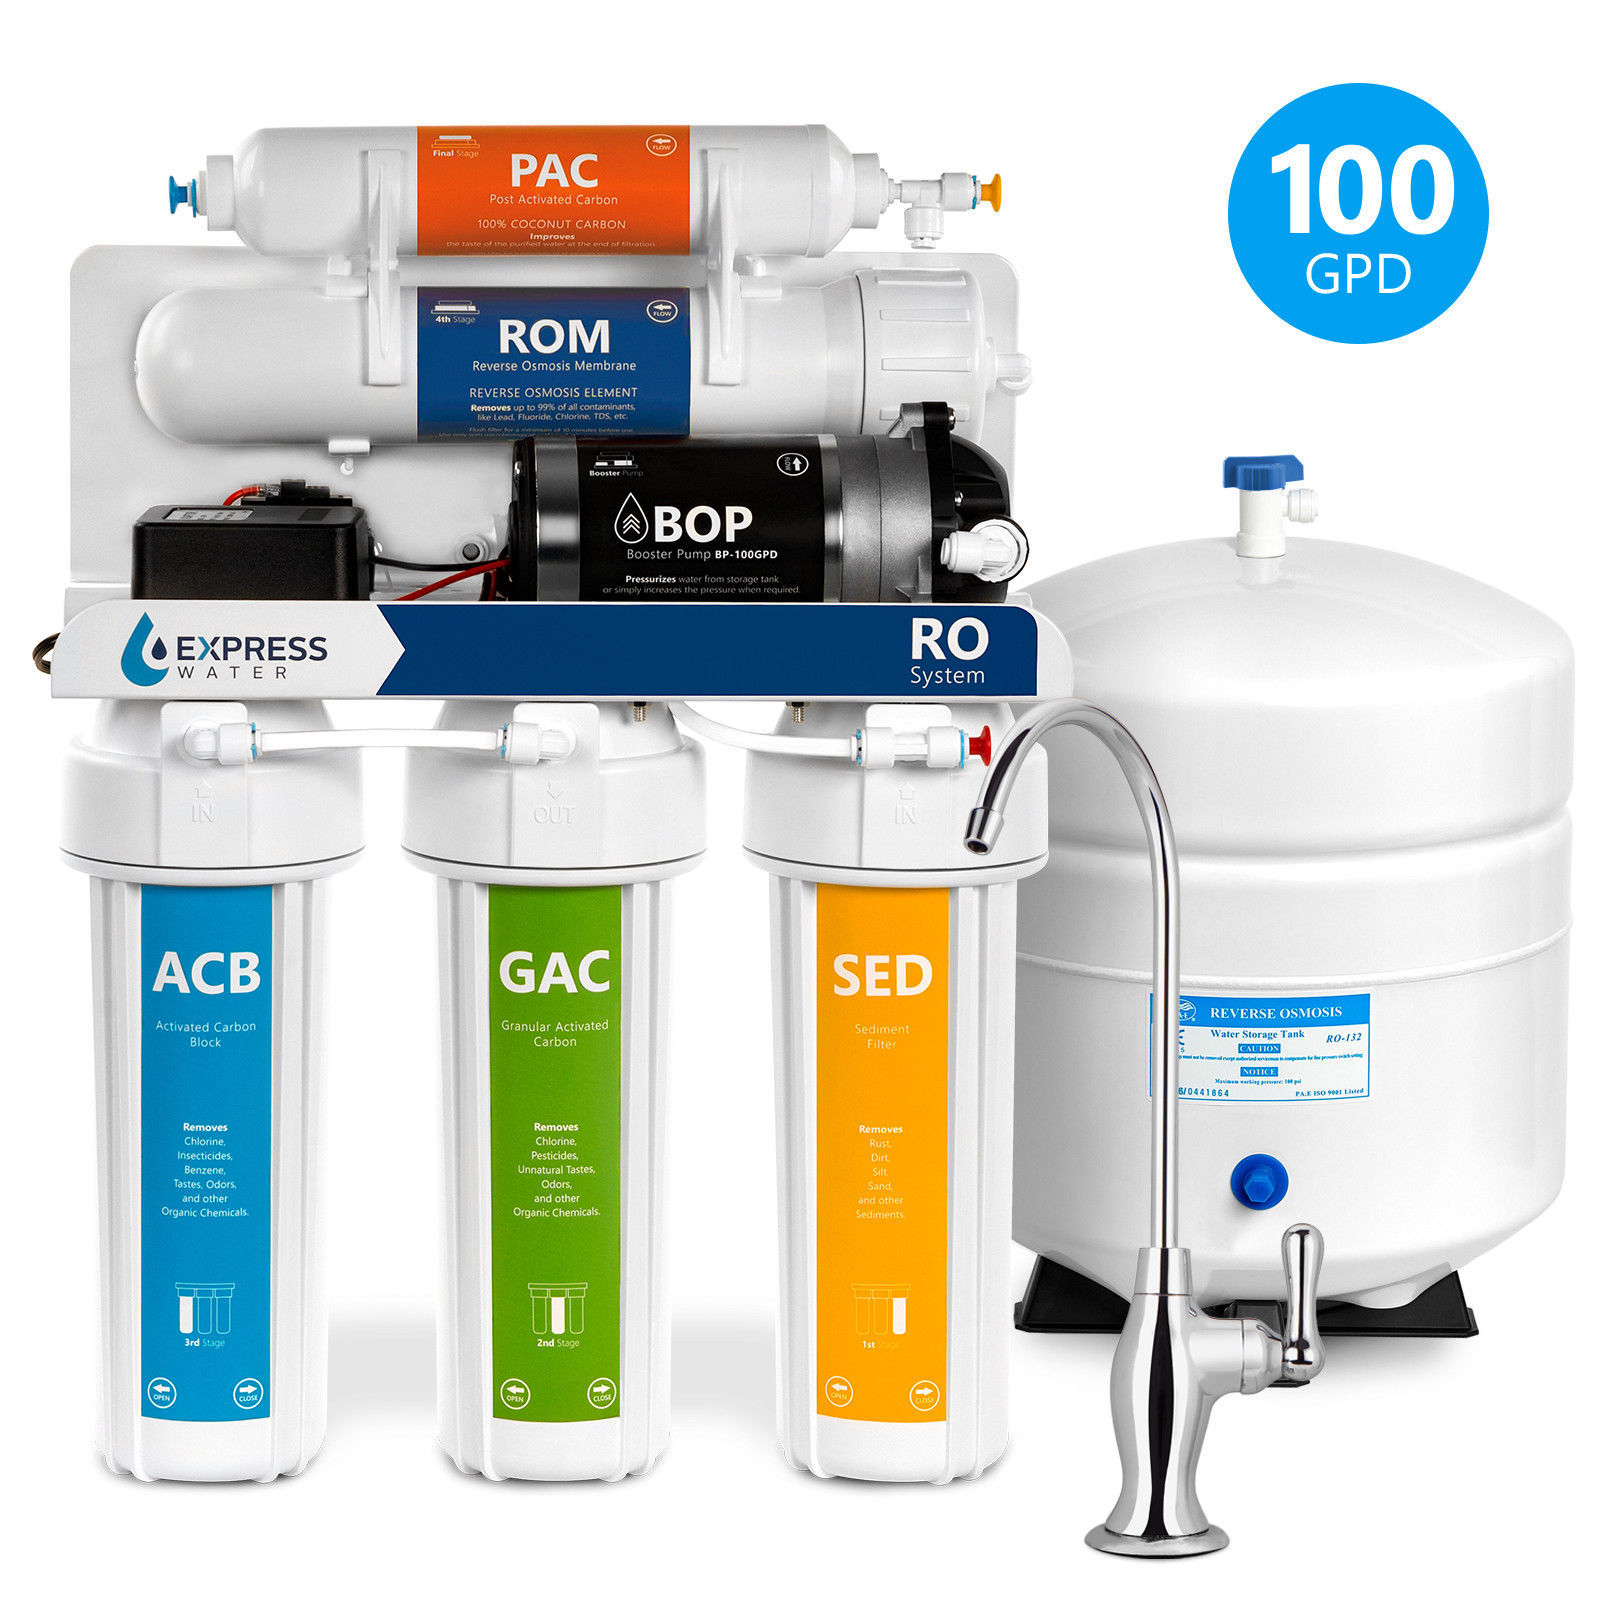 Express Water Reverse Osmosis Water Filtration System U2013 Multi Stage RO  Water Filter With Faucet And Tank U2013 Under Sink Water Purifier U2013 With  Pressure ...